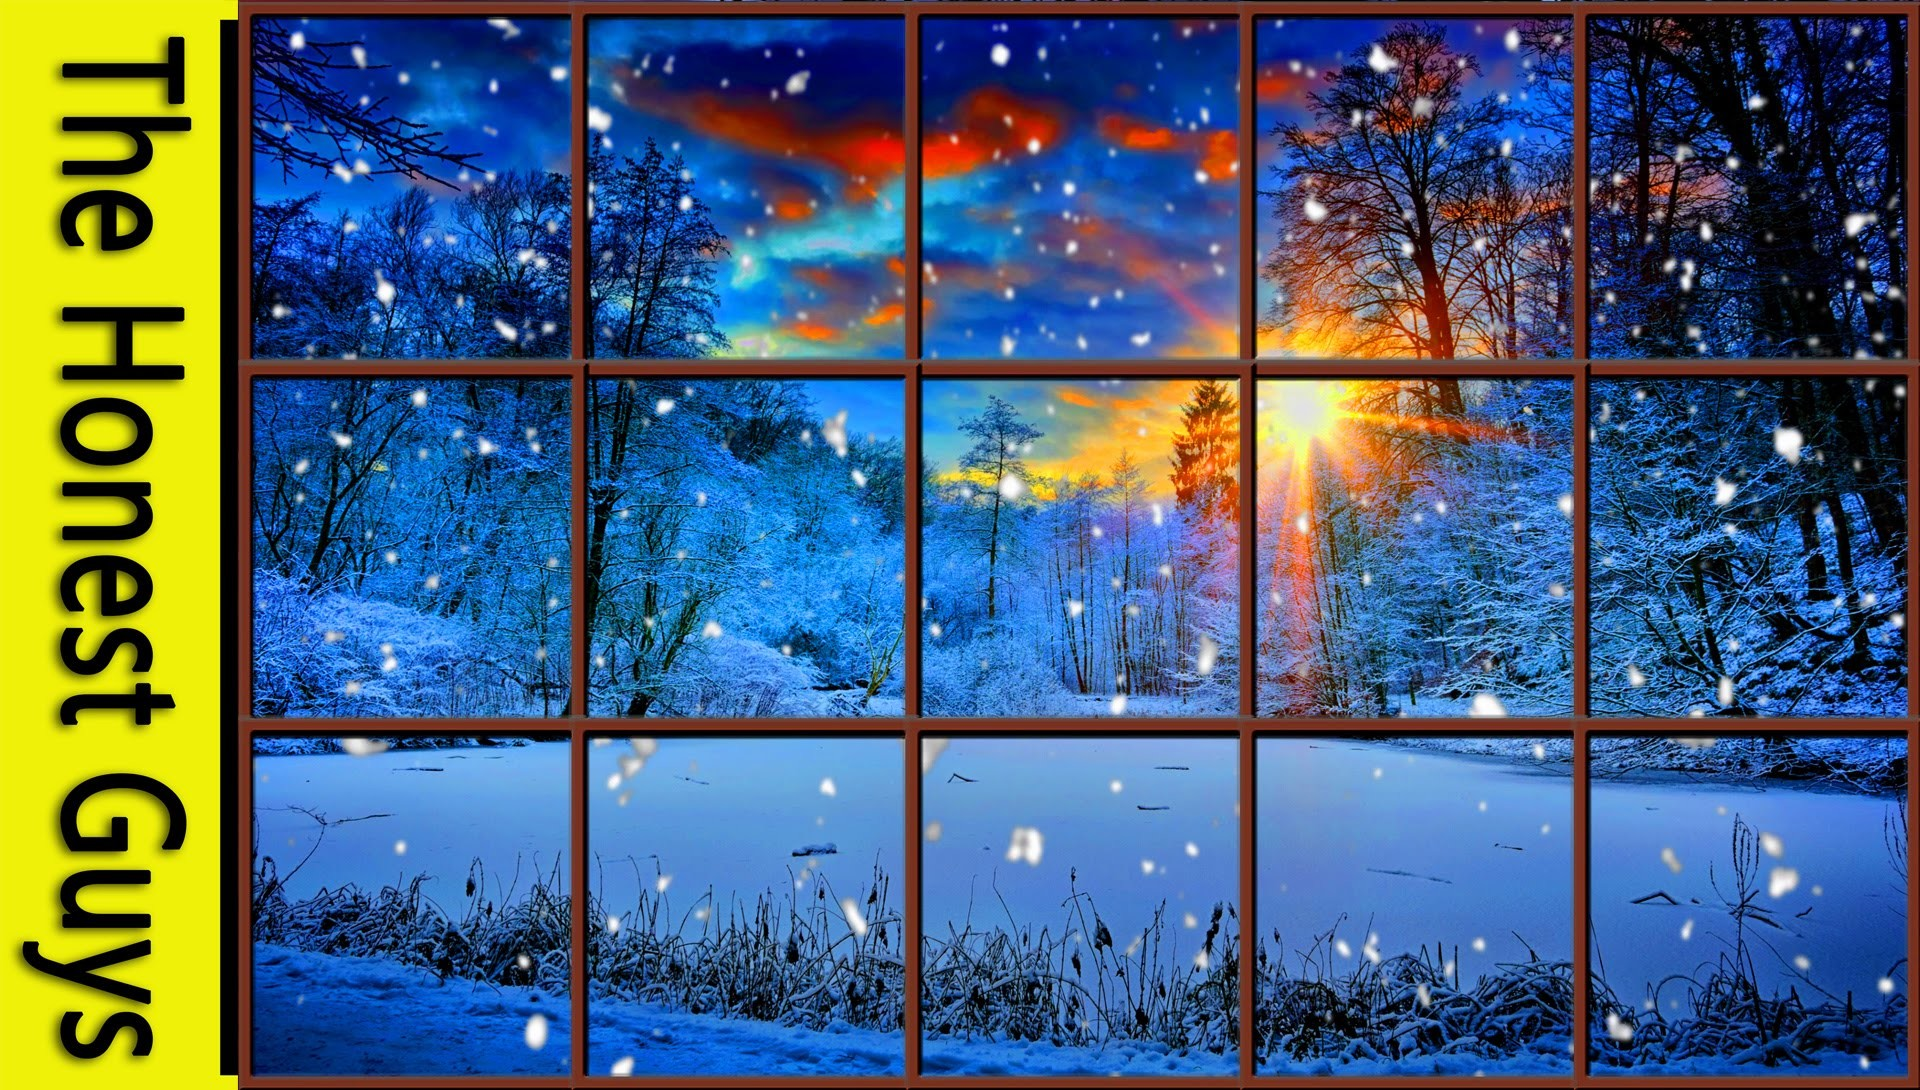 WINTER WINDOW SNOW SCENE (4K) – Living Wallpaper with Ambient Fireplace  Sounds – YouTube